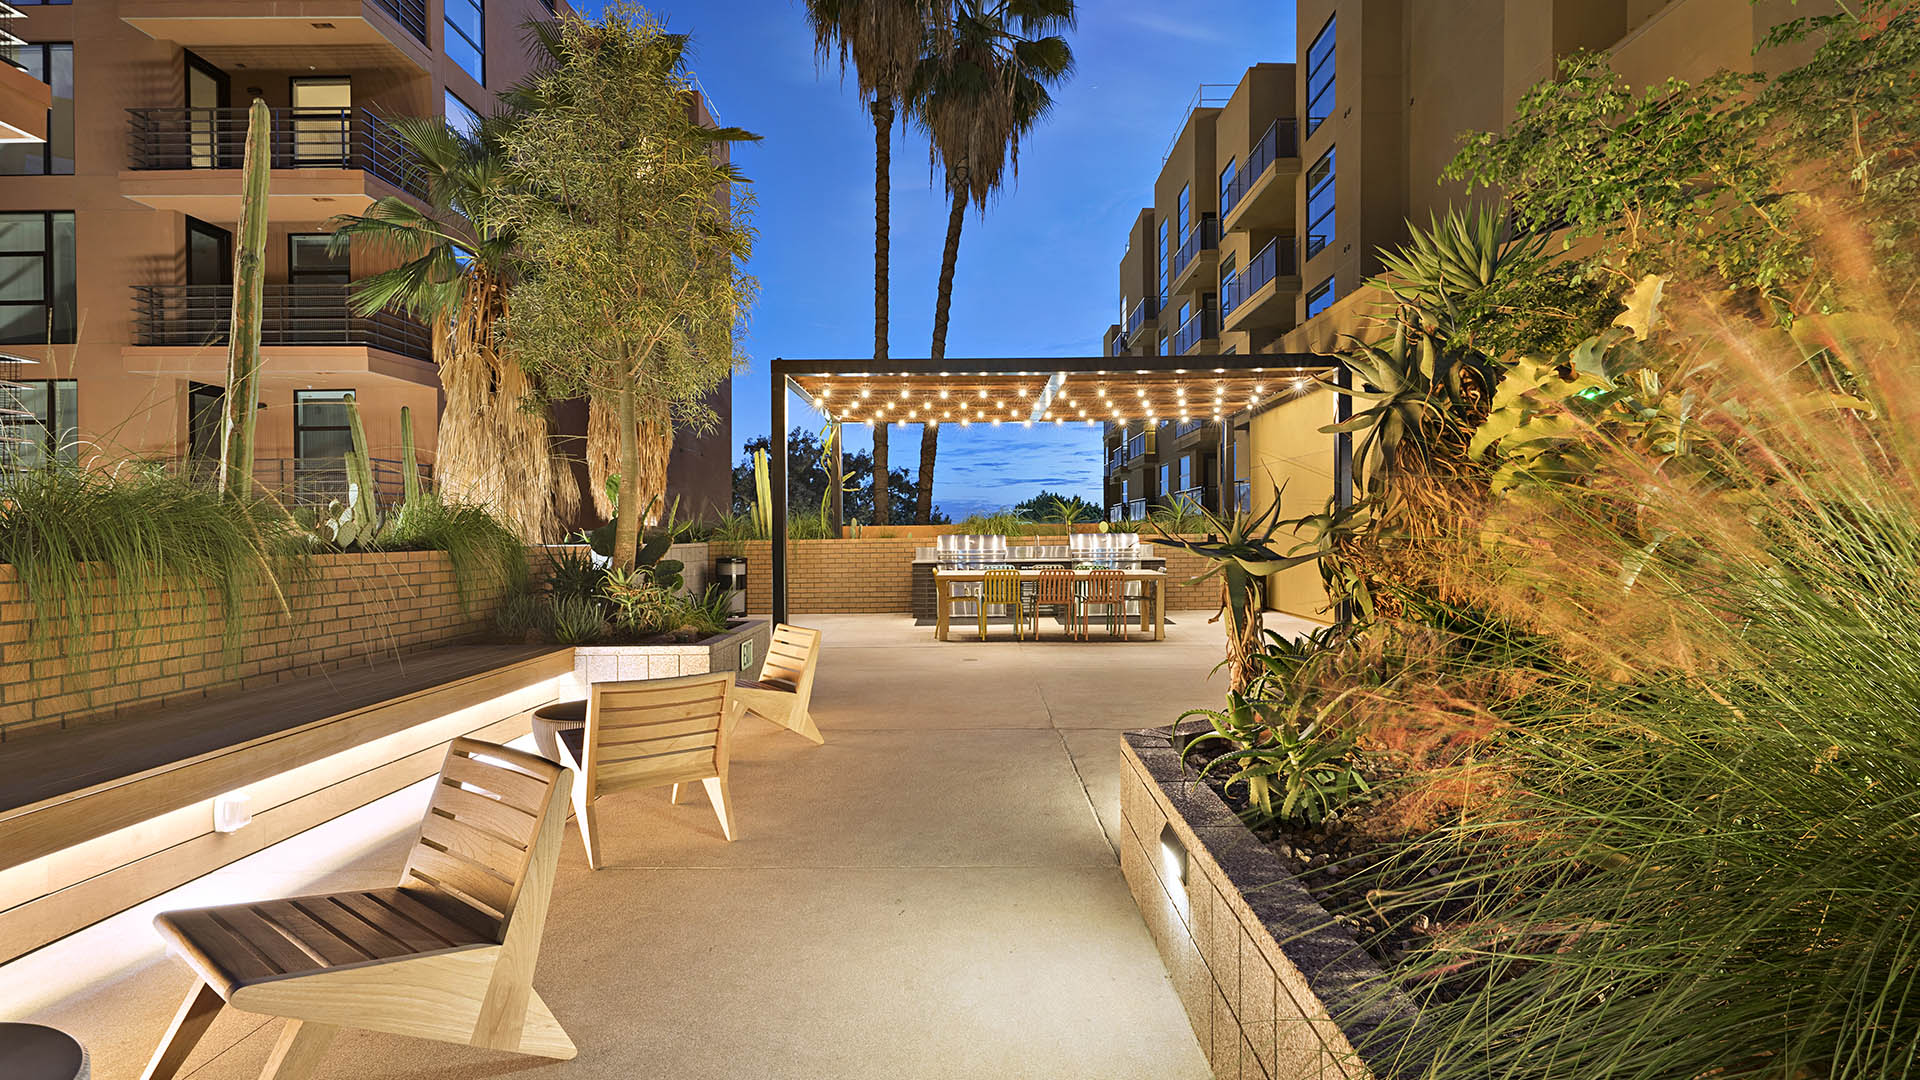 Courtyard at dusk with large planters with lush plants, modern lounge chairs, wood pergola with string lights, and palm trees.